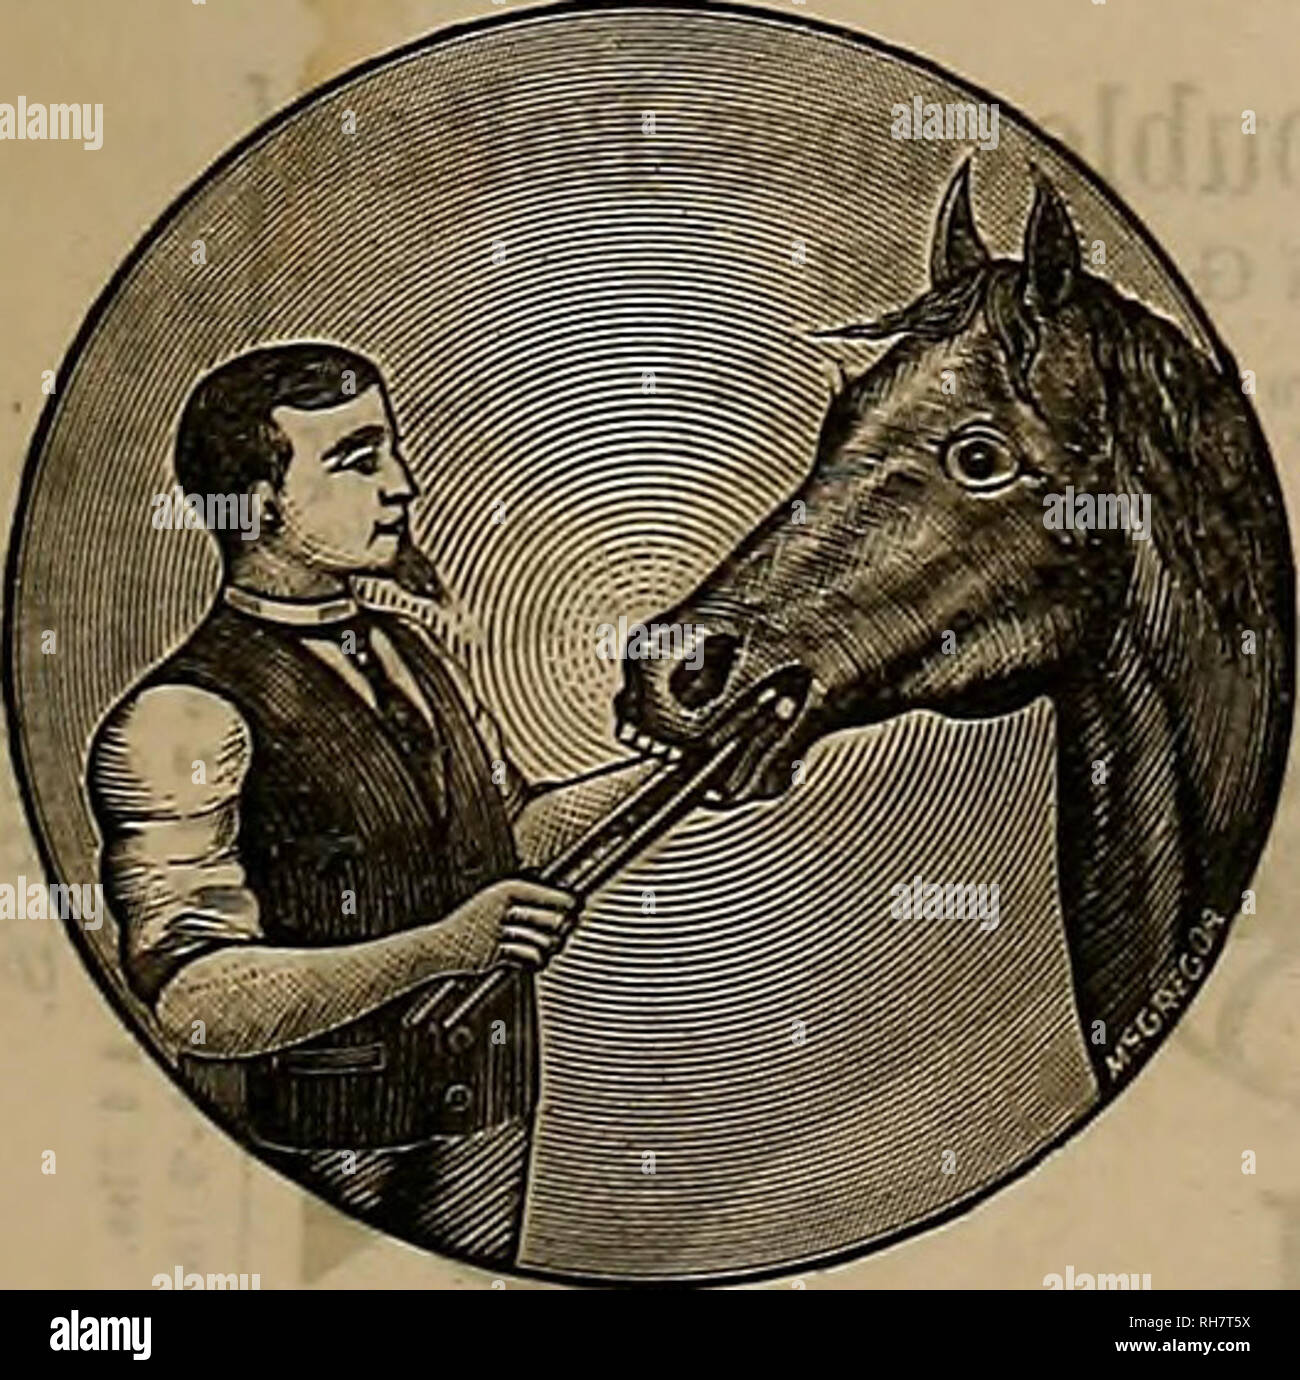 """. Breeder and sportsman. Horses. 1889 lltje %ttt&xx atwl Jporctsmatt. 127 HIGH-CLASS PEDIGREE STOCK ESTABLISHED 1882. We have for Private Sale selections of the follow- ing Stock, procured from the best studs of Great Britain, America and Australia. ALL SUITABLE FOB HIGH-OLASS STOD POItPOSES HORSES. BLOOD, COAOHEBS, TBOTTEES, ARABS, DRAUGHT, PONIES. CATTLE. DCRHAMS, DETONS, HEREFORDS, POLLED ANGUS, AYBSHIRES, JERSEYS. PIGS. IMPROVED BERKSHIRES, """"MAGIE,"""" POLAND CHINA, ESSEX, WHITE YORKSHIRE, 4c. ALL IMPORTED STOCK. EXHIBITION POULTRY Supplied to win in the keenest competition. Cho - Stock Image"""